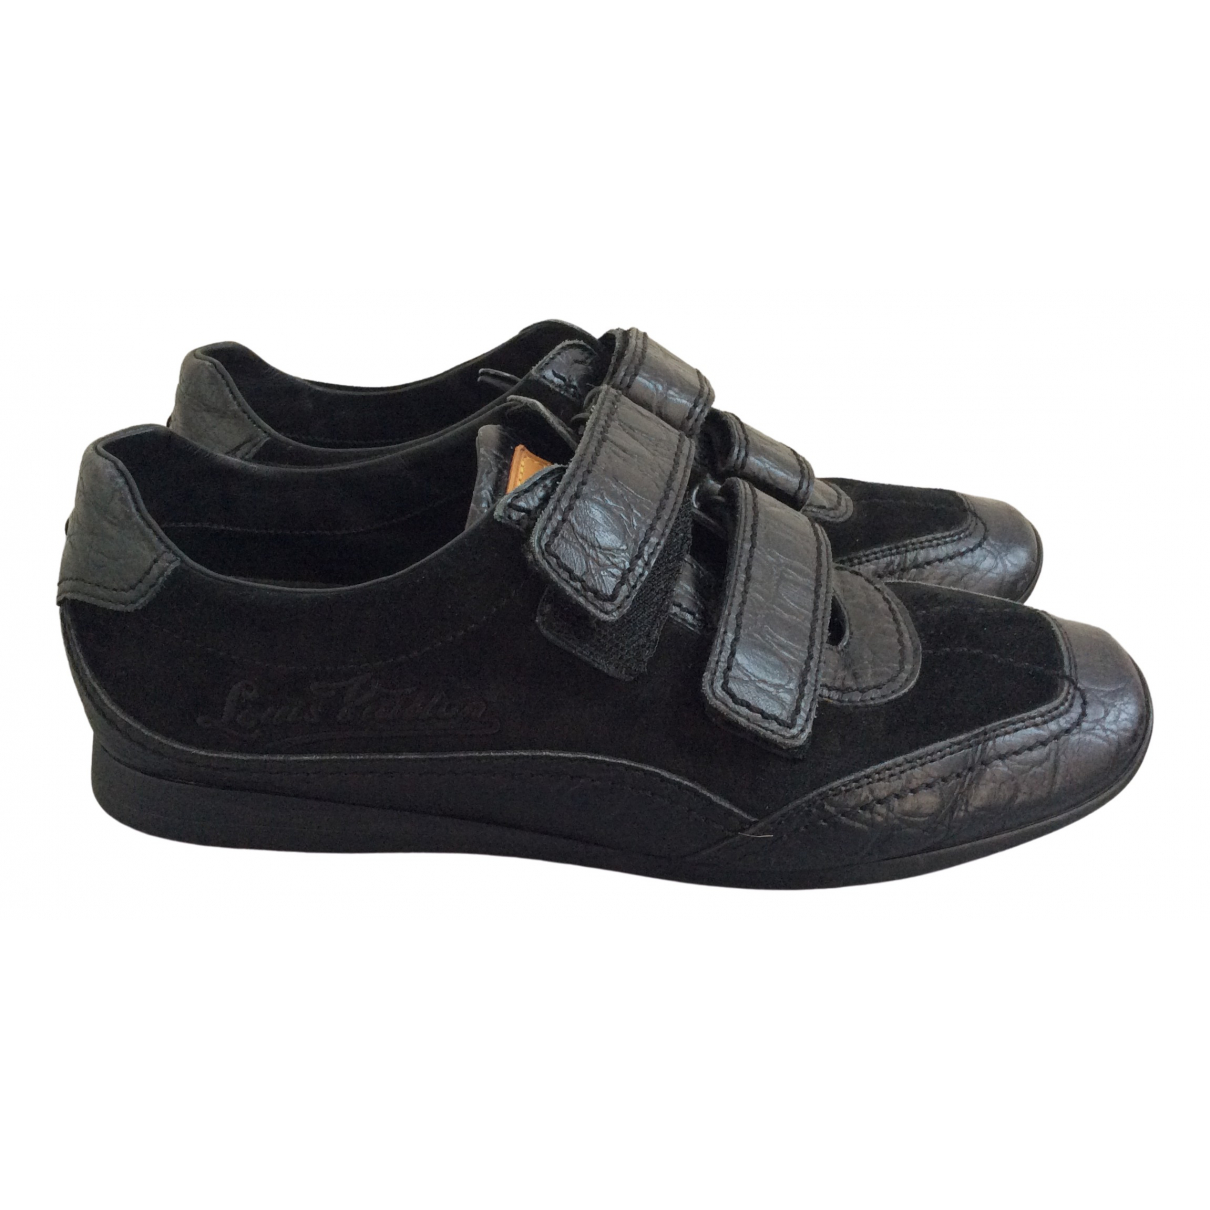 Louis Vuitton \N Sneakers in  Schwarz Leder